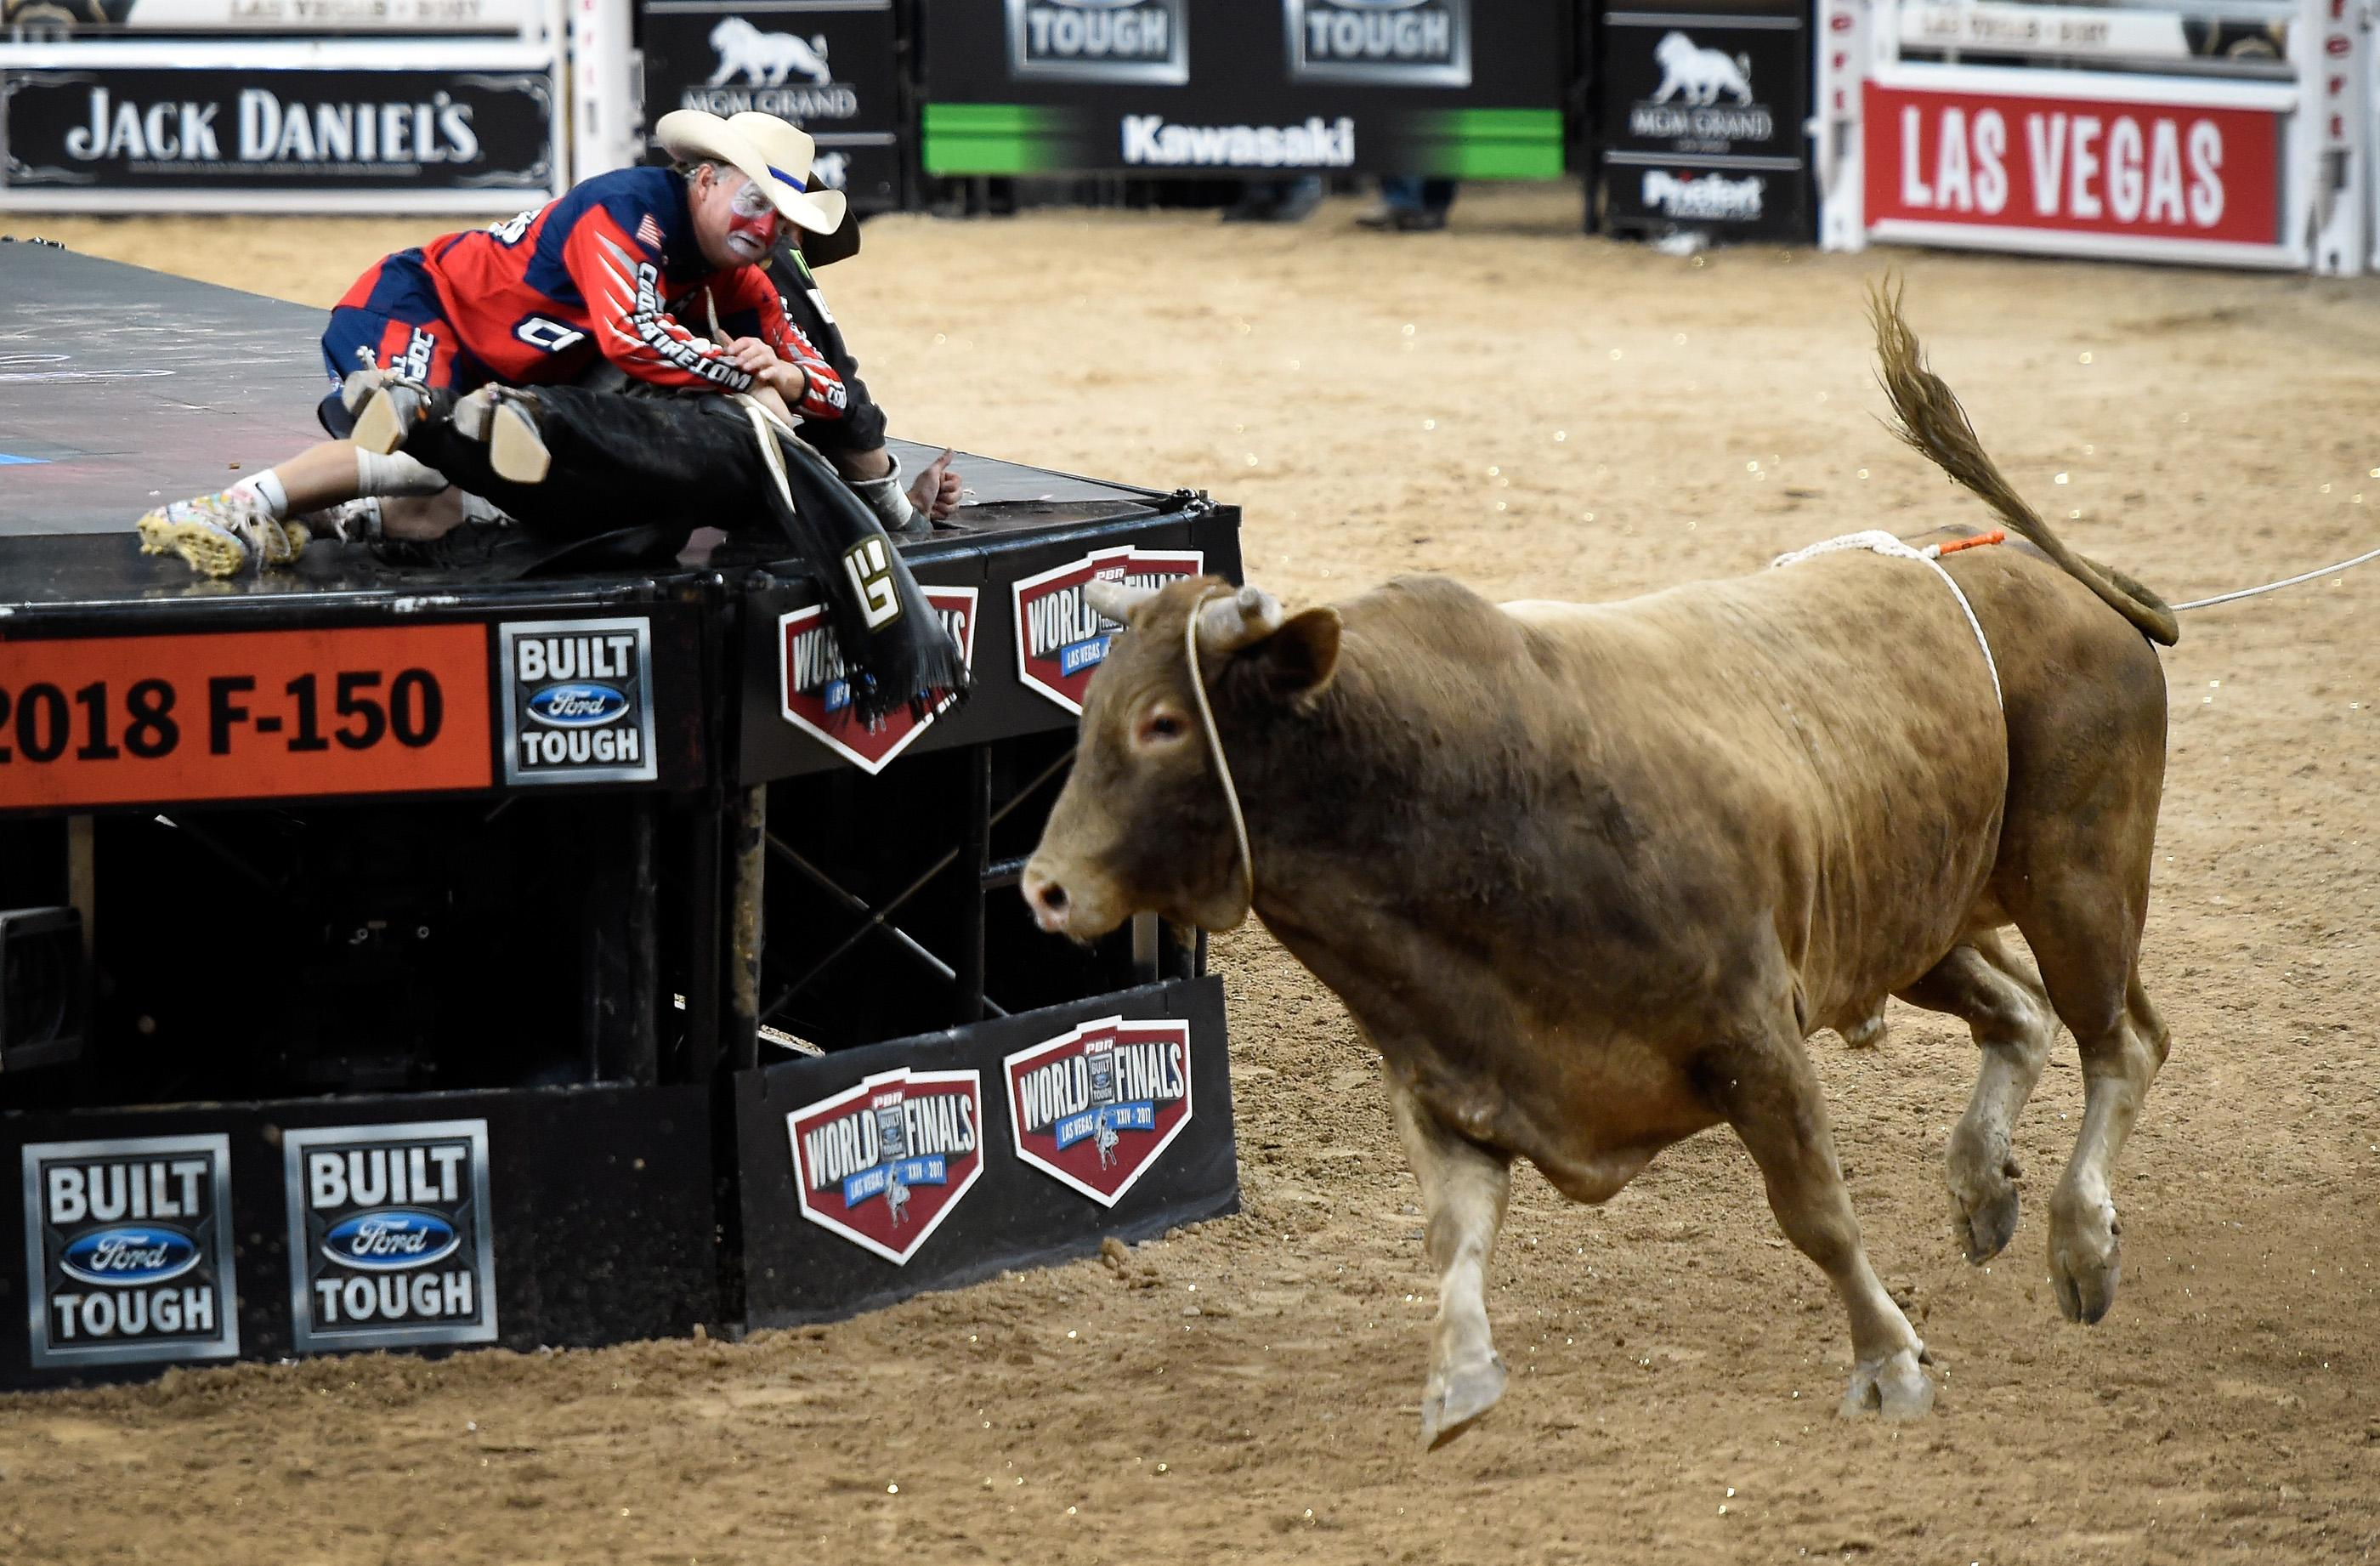 Bull fighter Flint Rasmussen pulls bull rider Guiherme Marchi on to the stage as Hedoo still runs free after his ride during the PBR World Finals at T-Mobile Arena Sunday, Nov. 5, 2017, in Las Vegas. [David Becker/Las Vegas News Bureau]